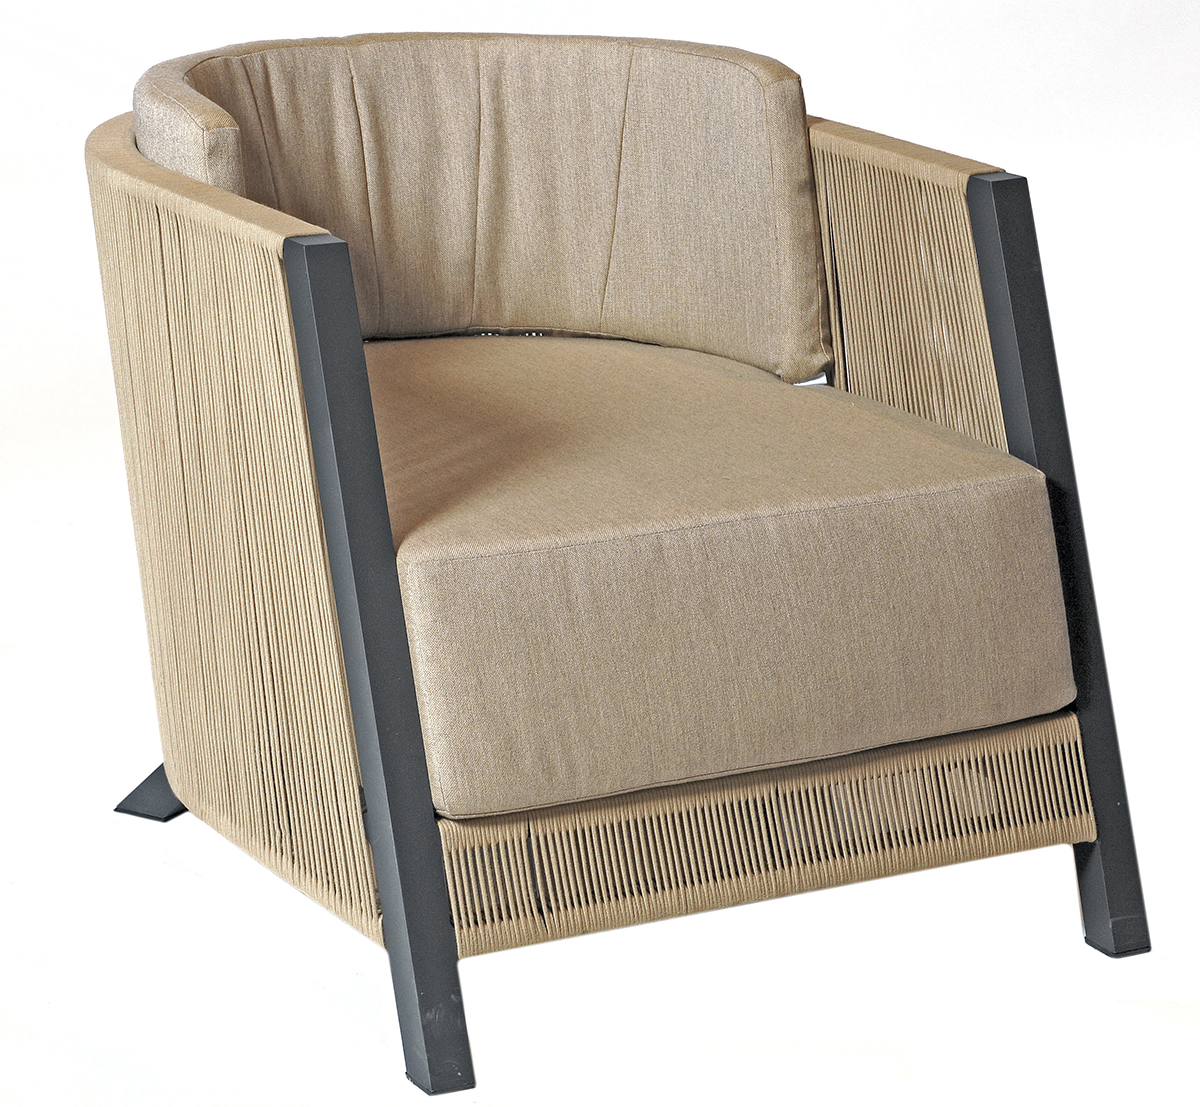 Borek Outdoor Furniture And Accessories Cosenza Collection